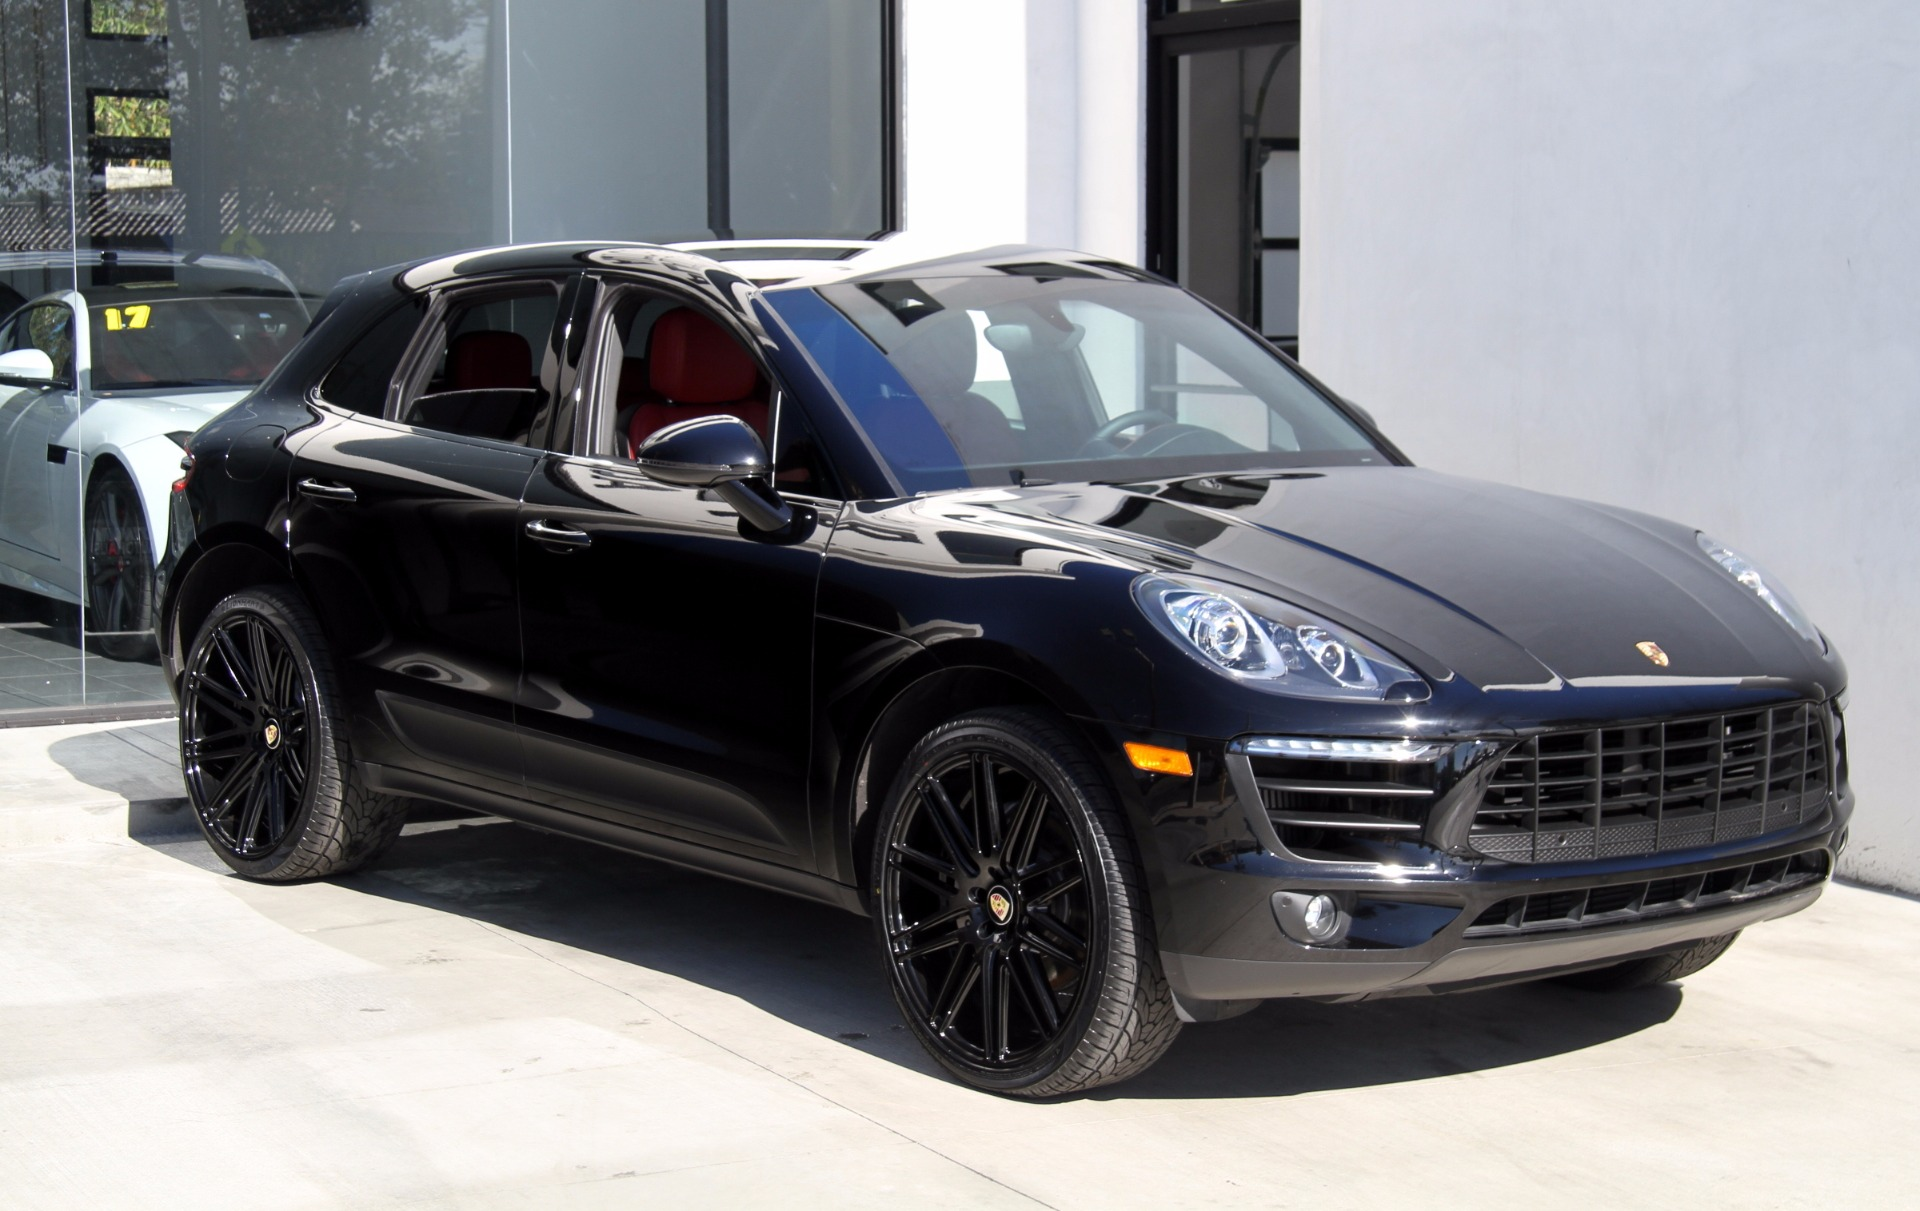 2016 porsche macan s stock 6031 for sale near redondo beach ca ca porsche dealer. Black Bedroom Furniture Sets. Home Design Ideas